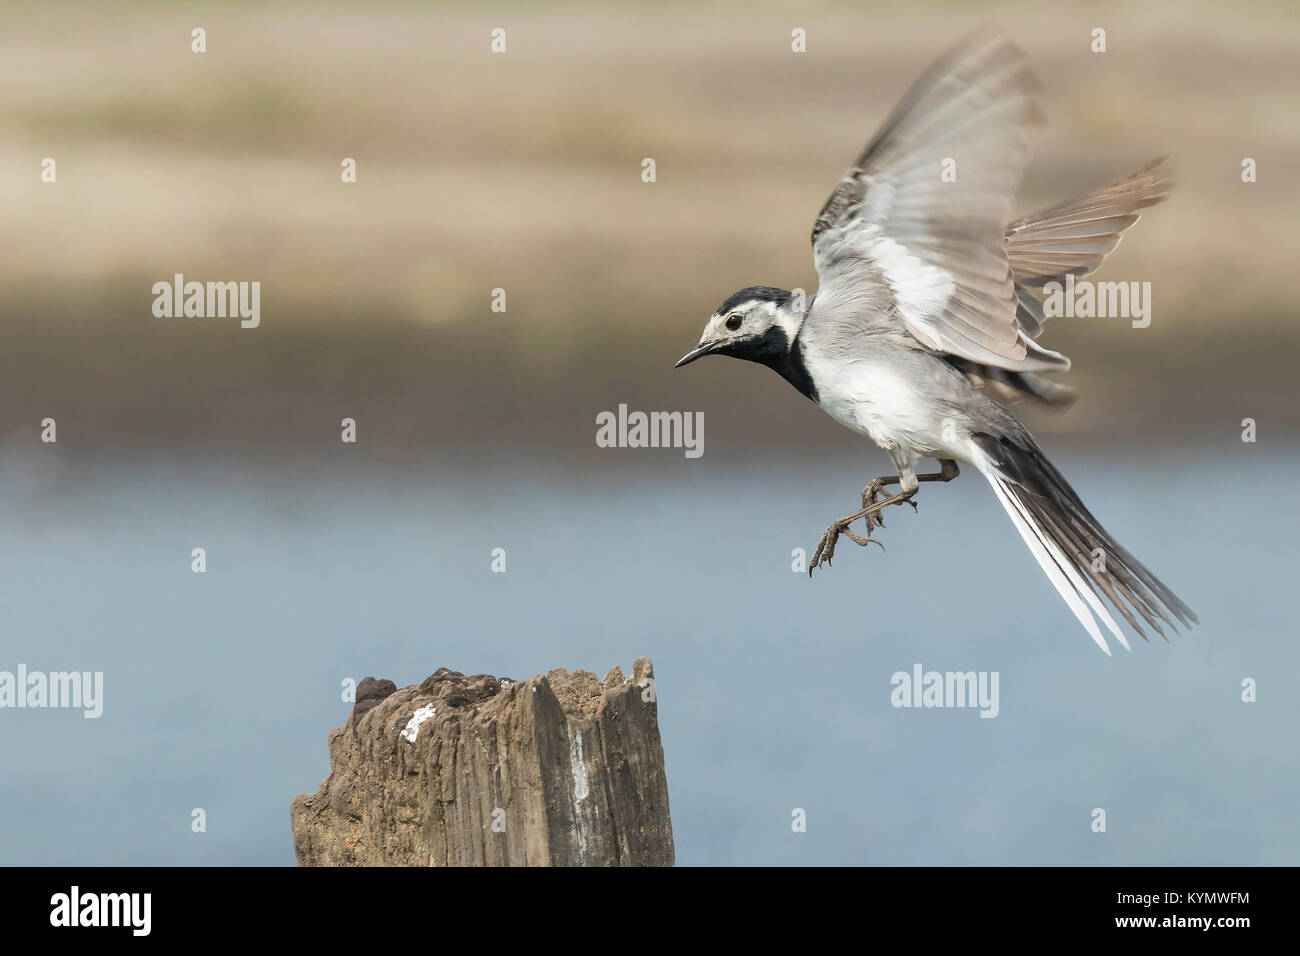 Closeup of a White Wagtail, Motacilla alba, in flight. Bird with white, gray and black feathers. The White Wagtail Stock Photo